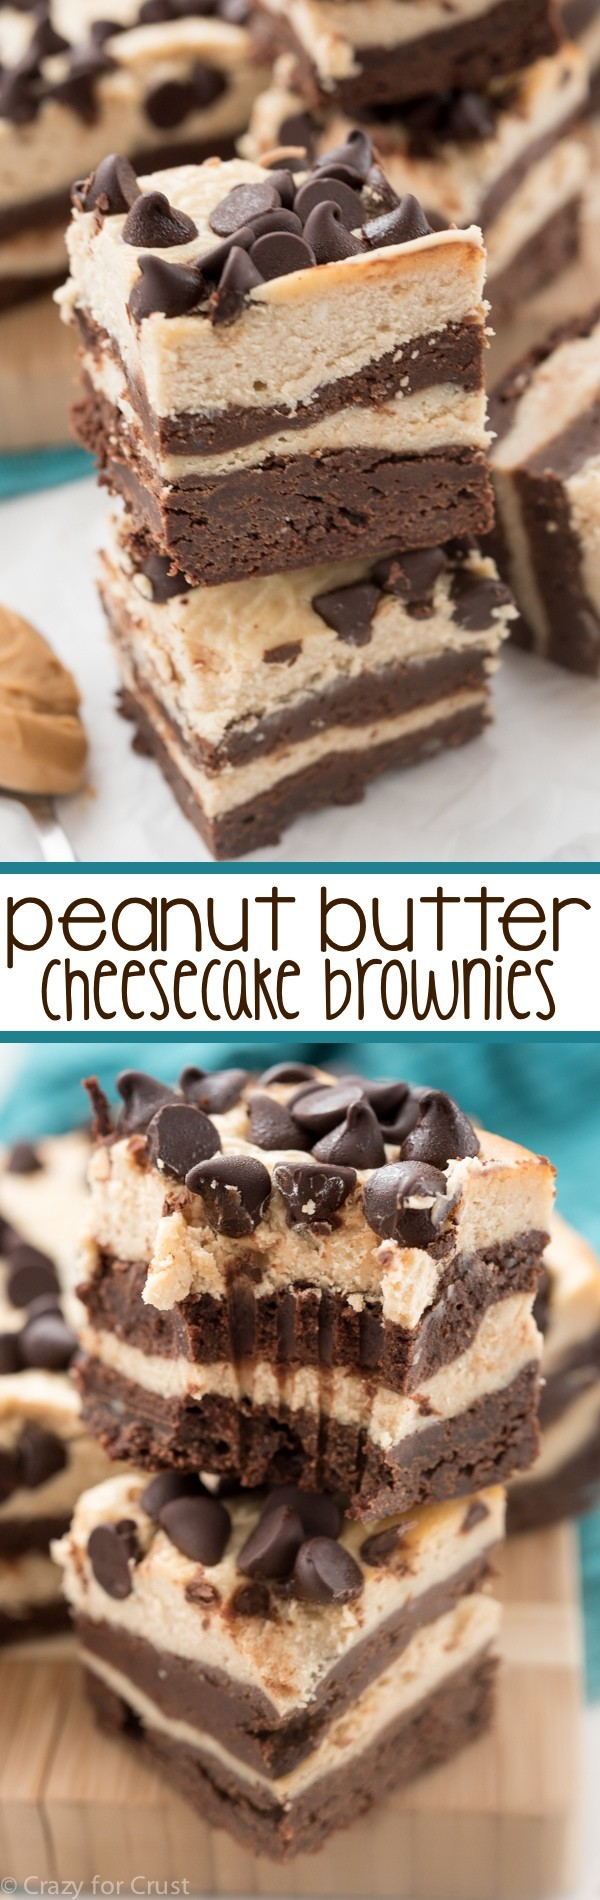 Get the recipe ♥ Peanut Butter Cheesecake Brownies #besttoeat @recipes_to_go